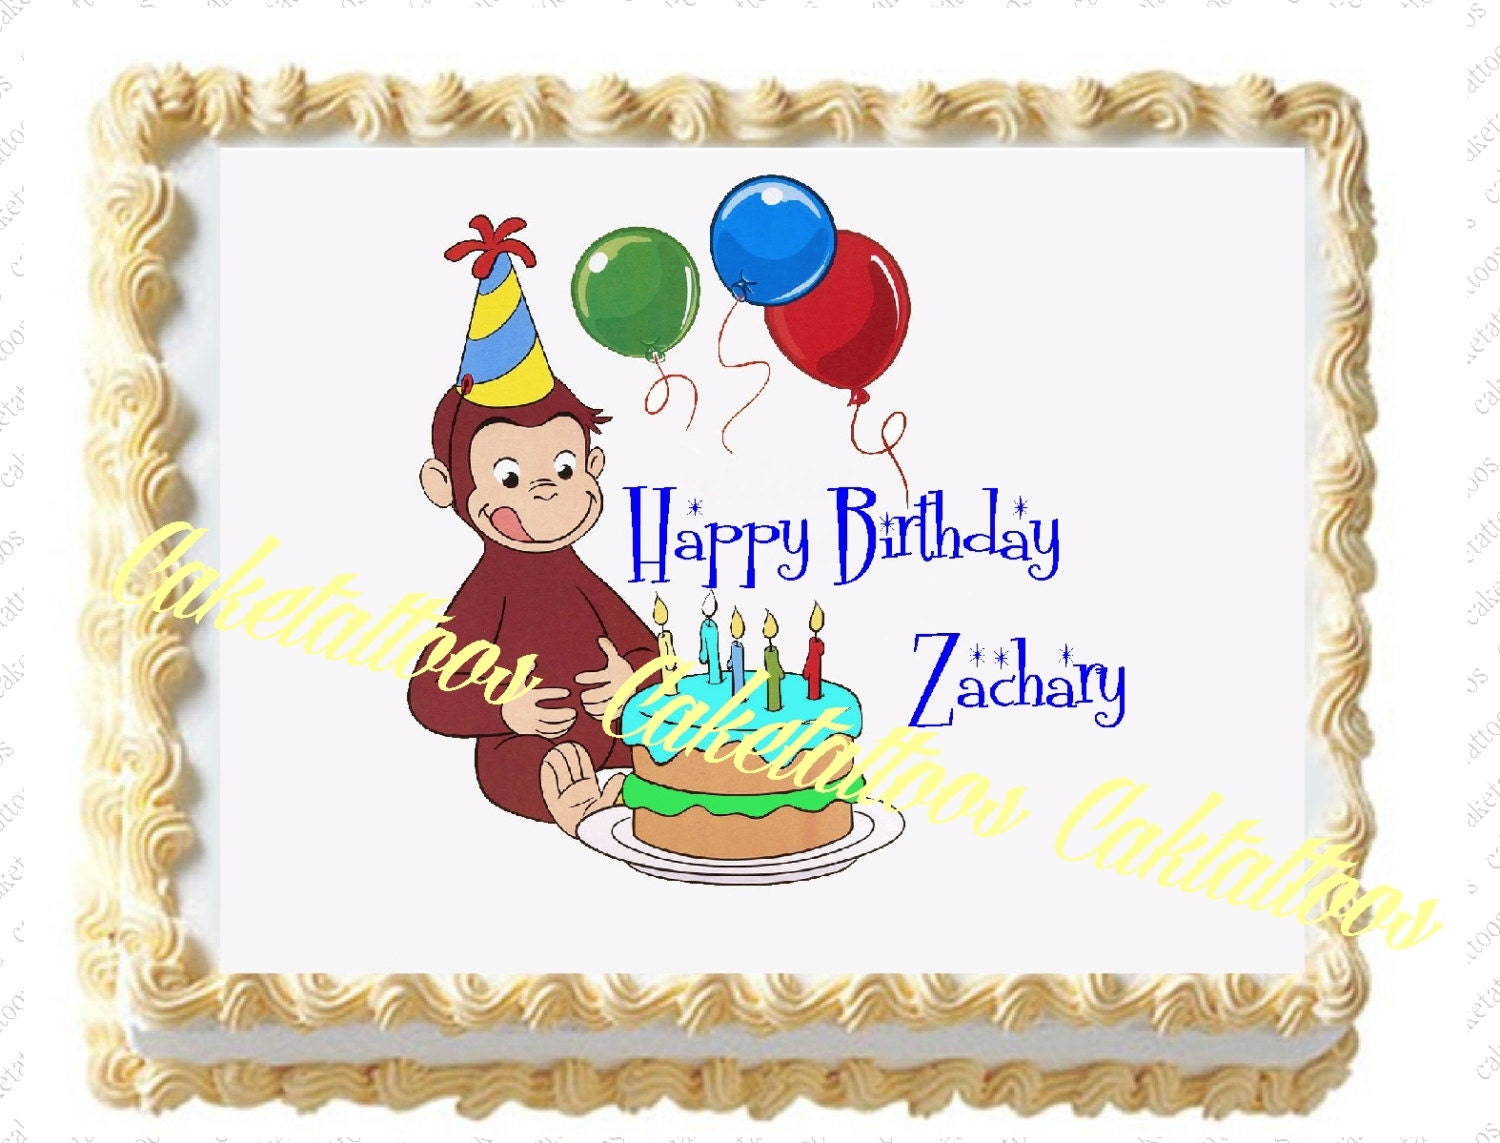 Edible Cake Images Curious George : Caketattoos on Etsy